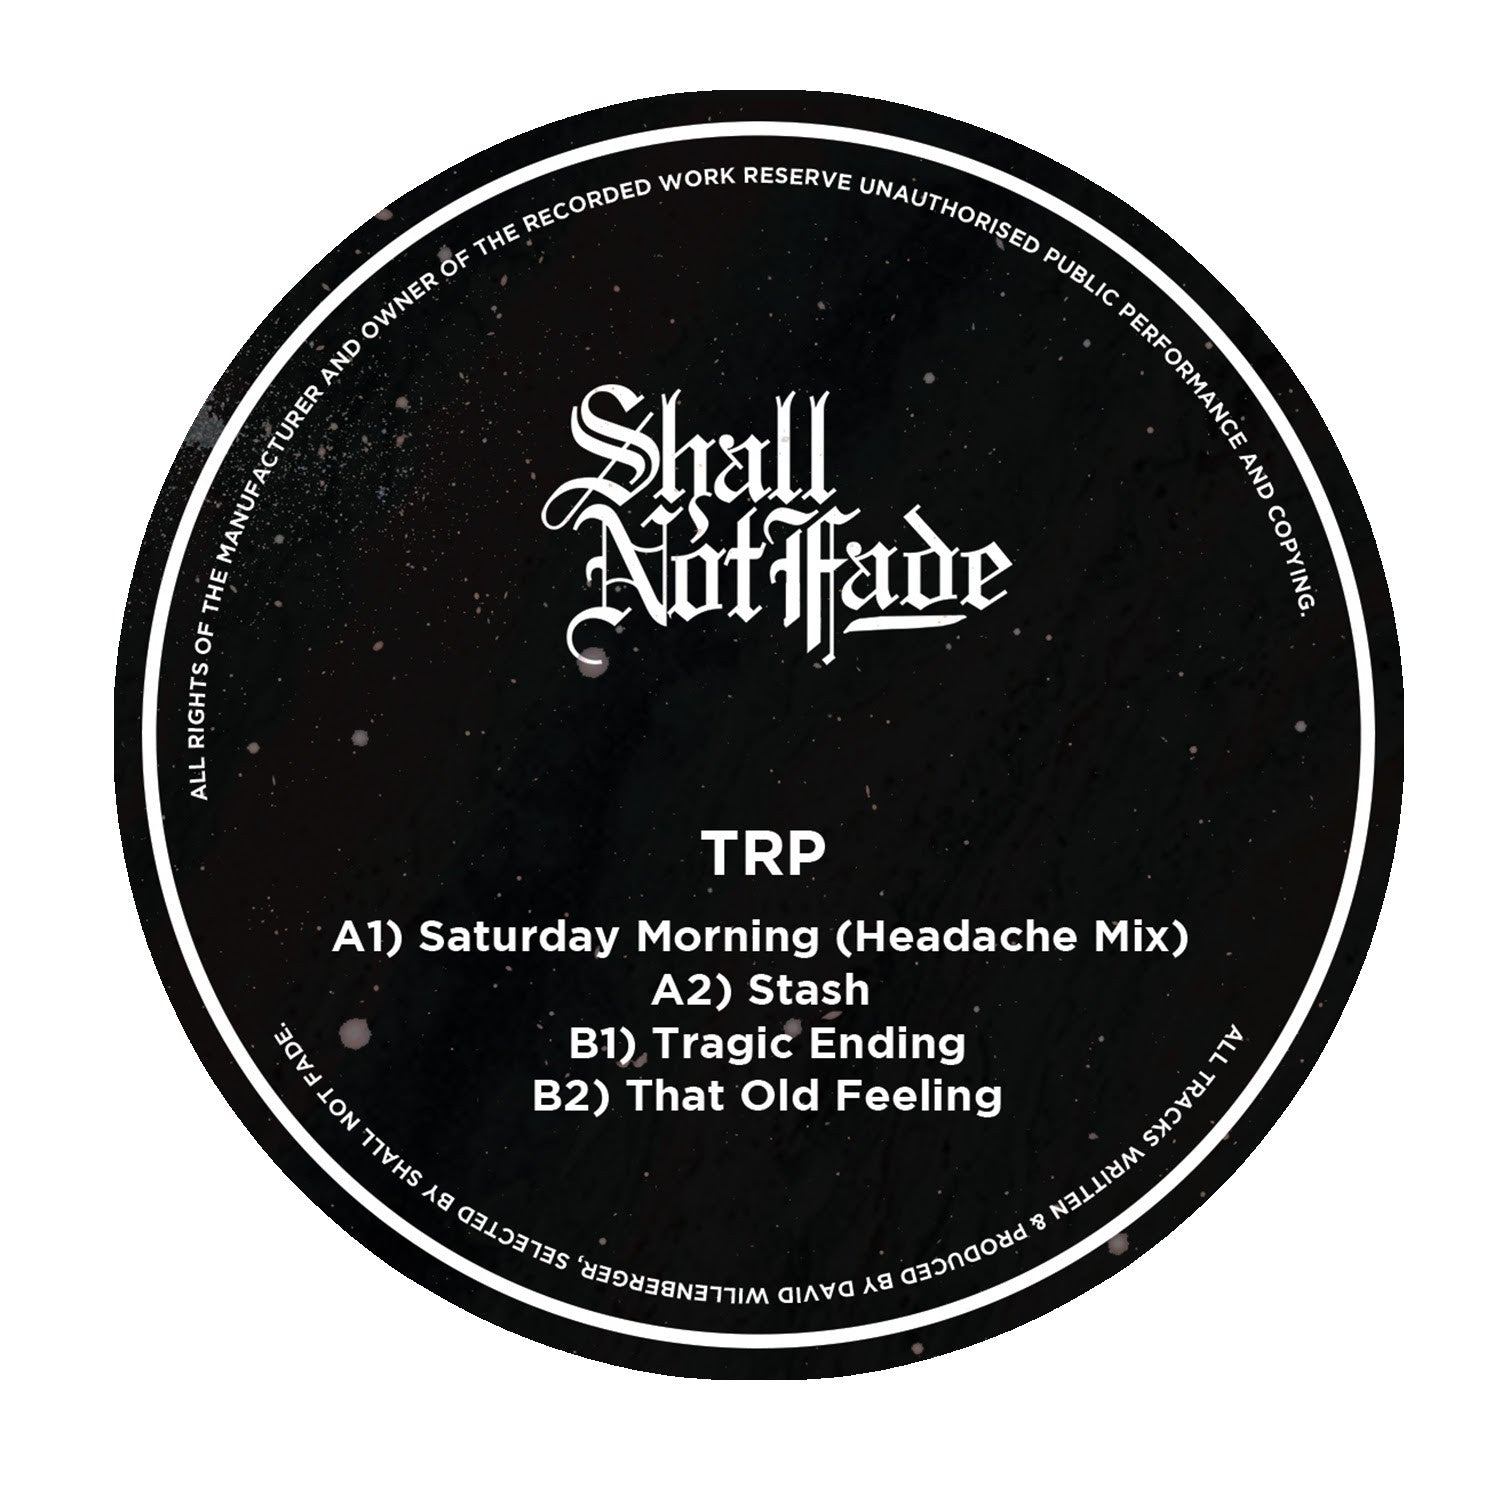 TRP - Saturday Morning EP , Vinyl - Shall Not Fade, Unearthed Sounds